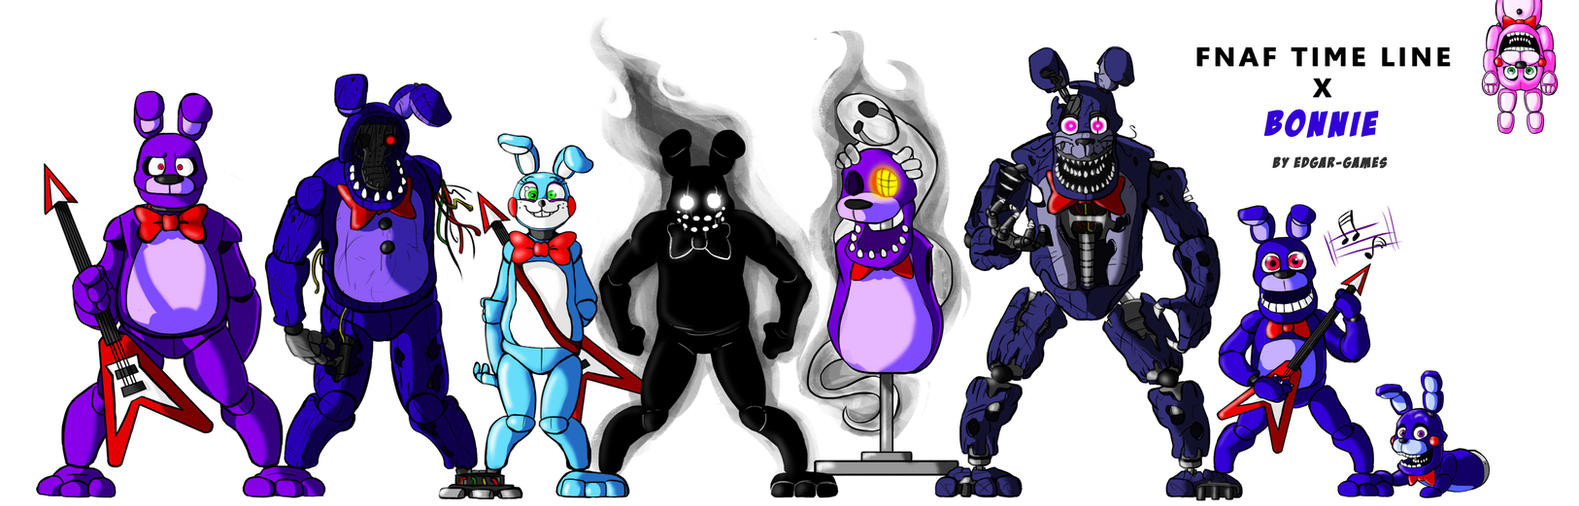 Bonnie FNAF (Time line) by Edgar-Games